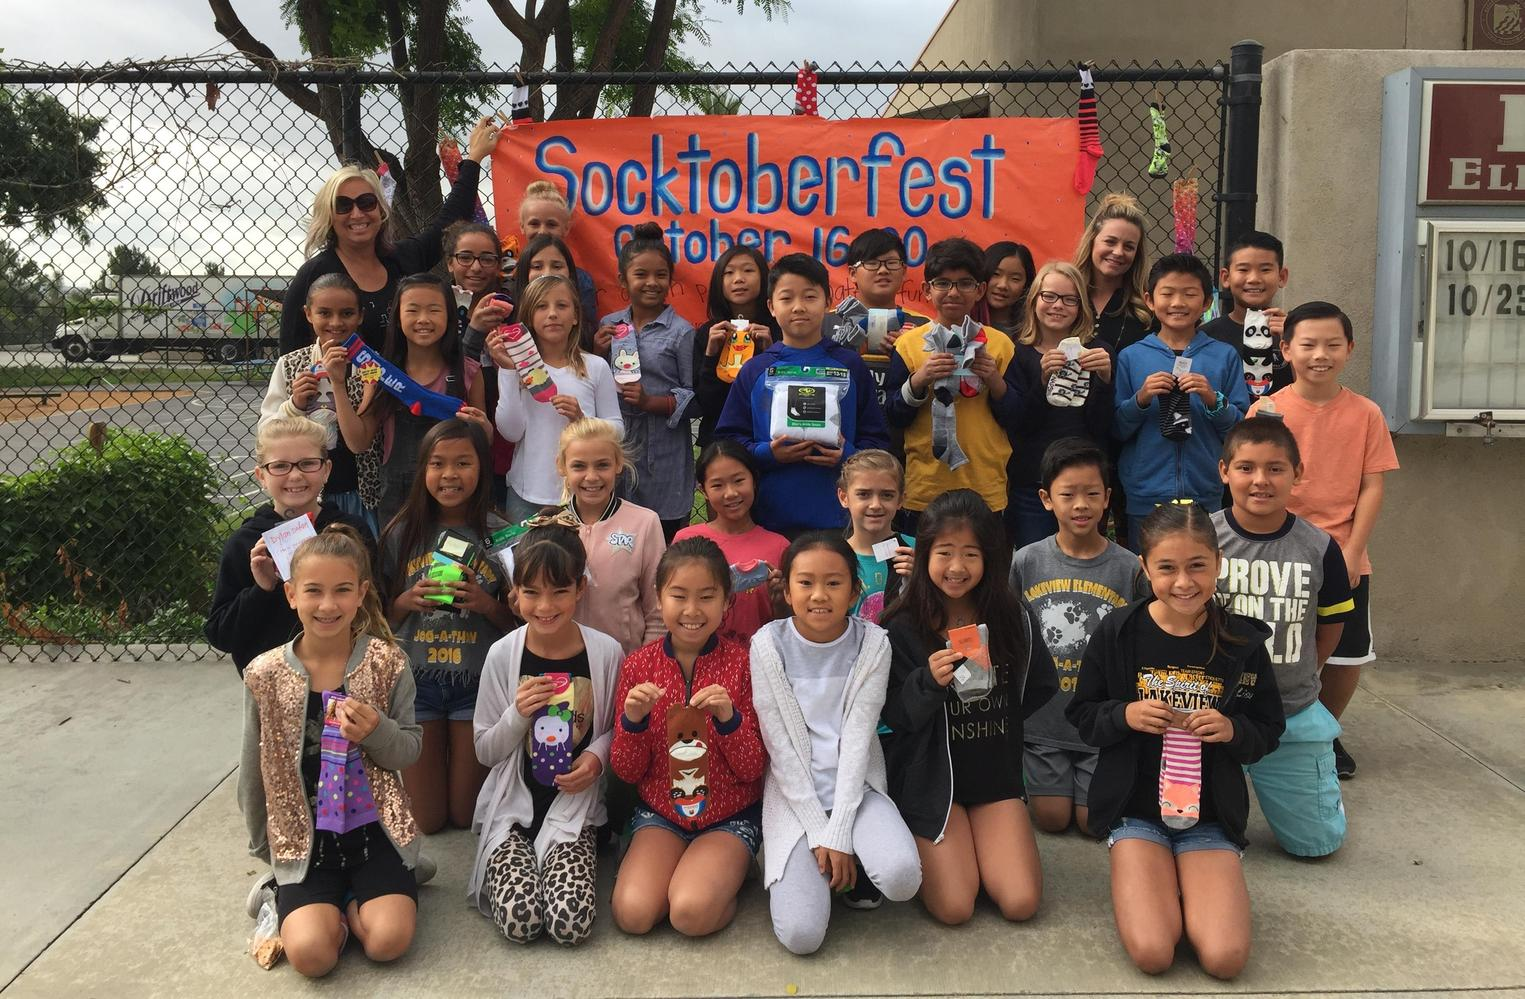 Students collecting socks for Socktoberfest